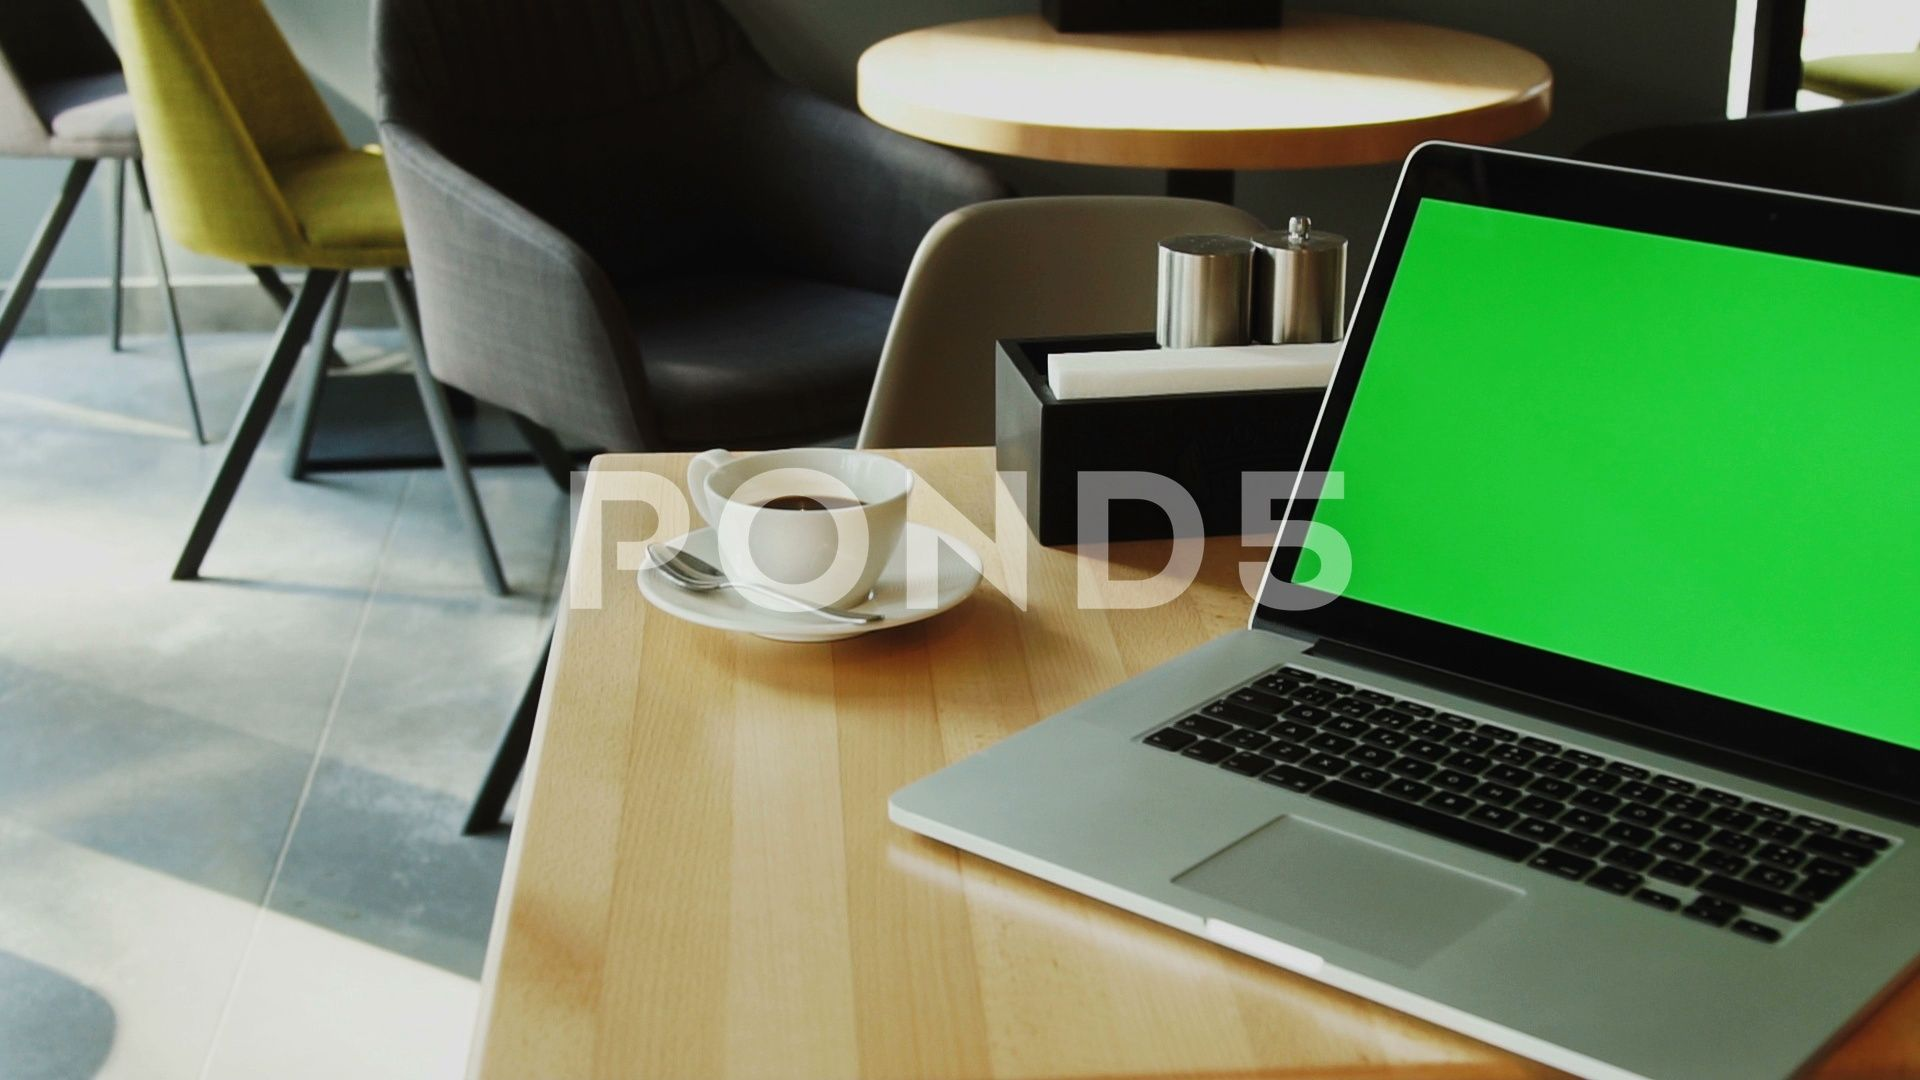 Green Mock Up Screen Of Personal Computer In Loft Interior Cafe With Camera Stock Footage Ad Personal Computer Screen Green Loft Interiors Cafe Computer